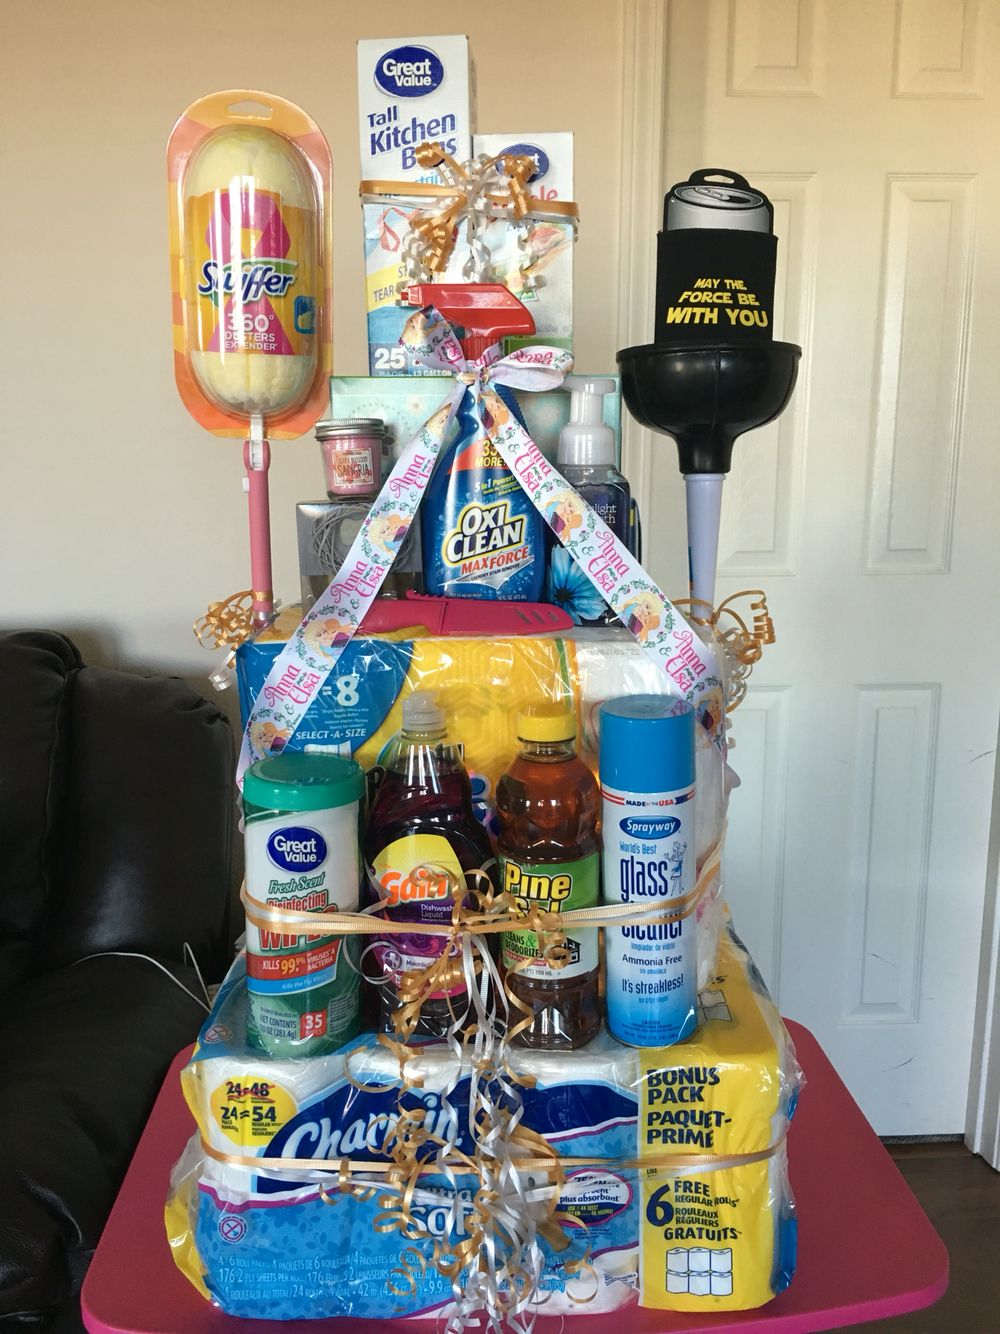 Great House Warming Gift With Some Personal Touches For The Couple. You Can Never  Go Wrong